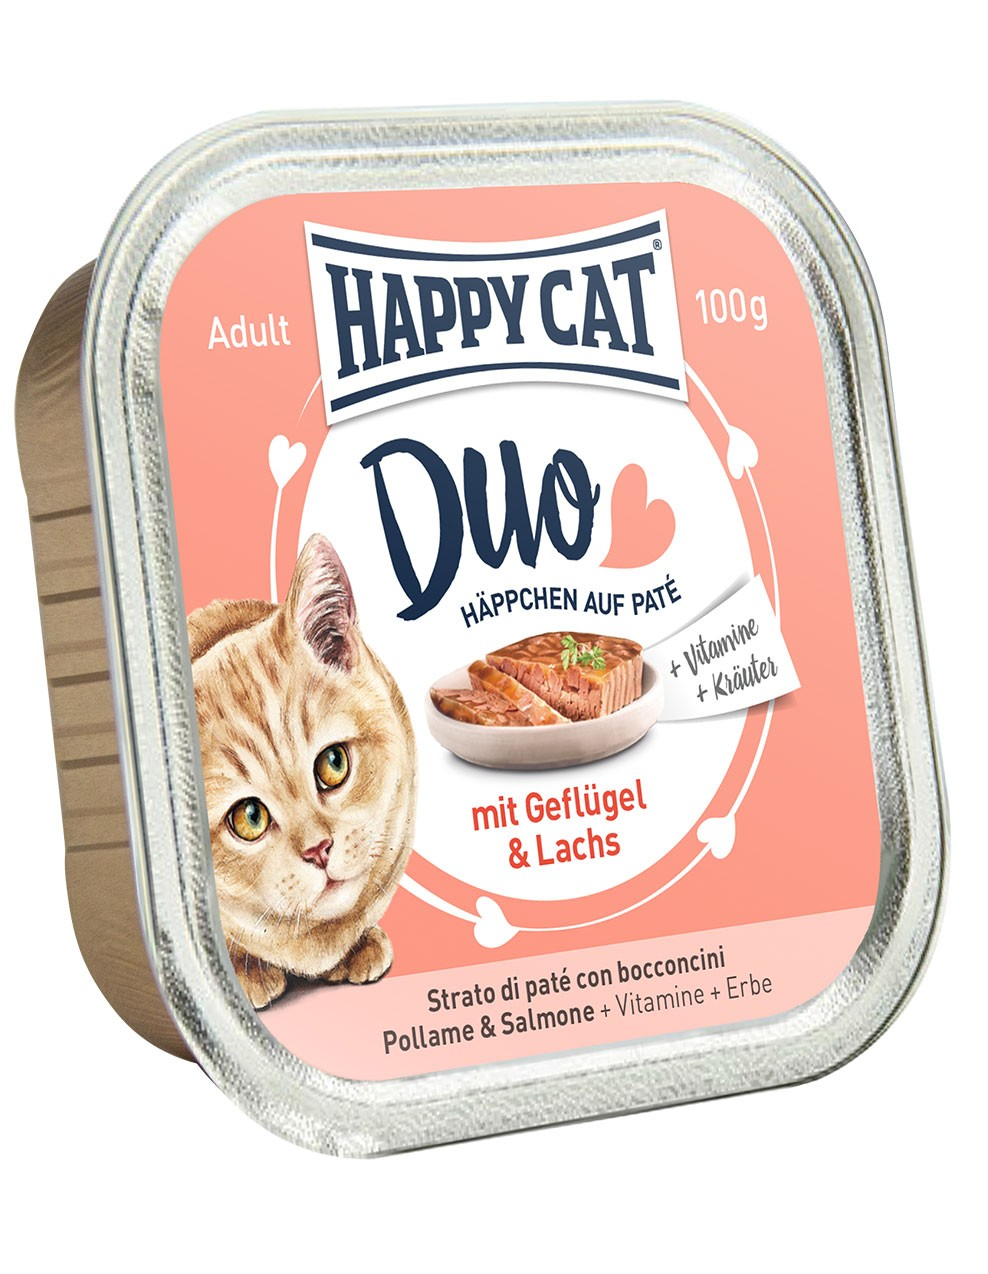 Duo Menu - Geflügel & Lachs (12x100g) - Happycat